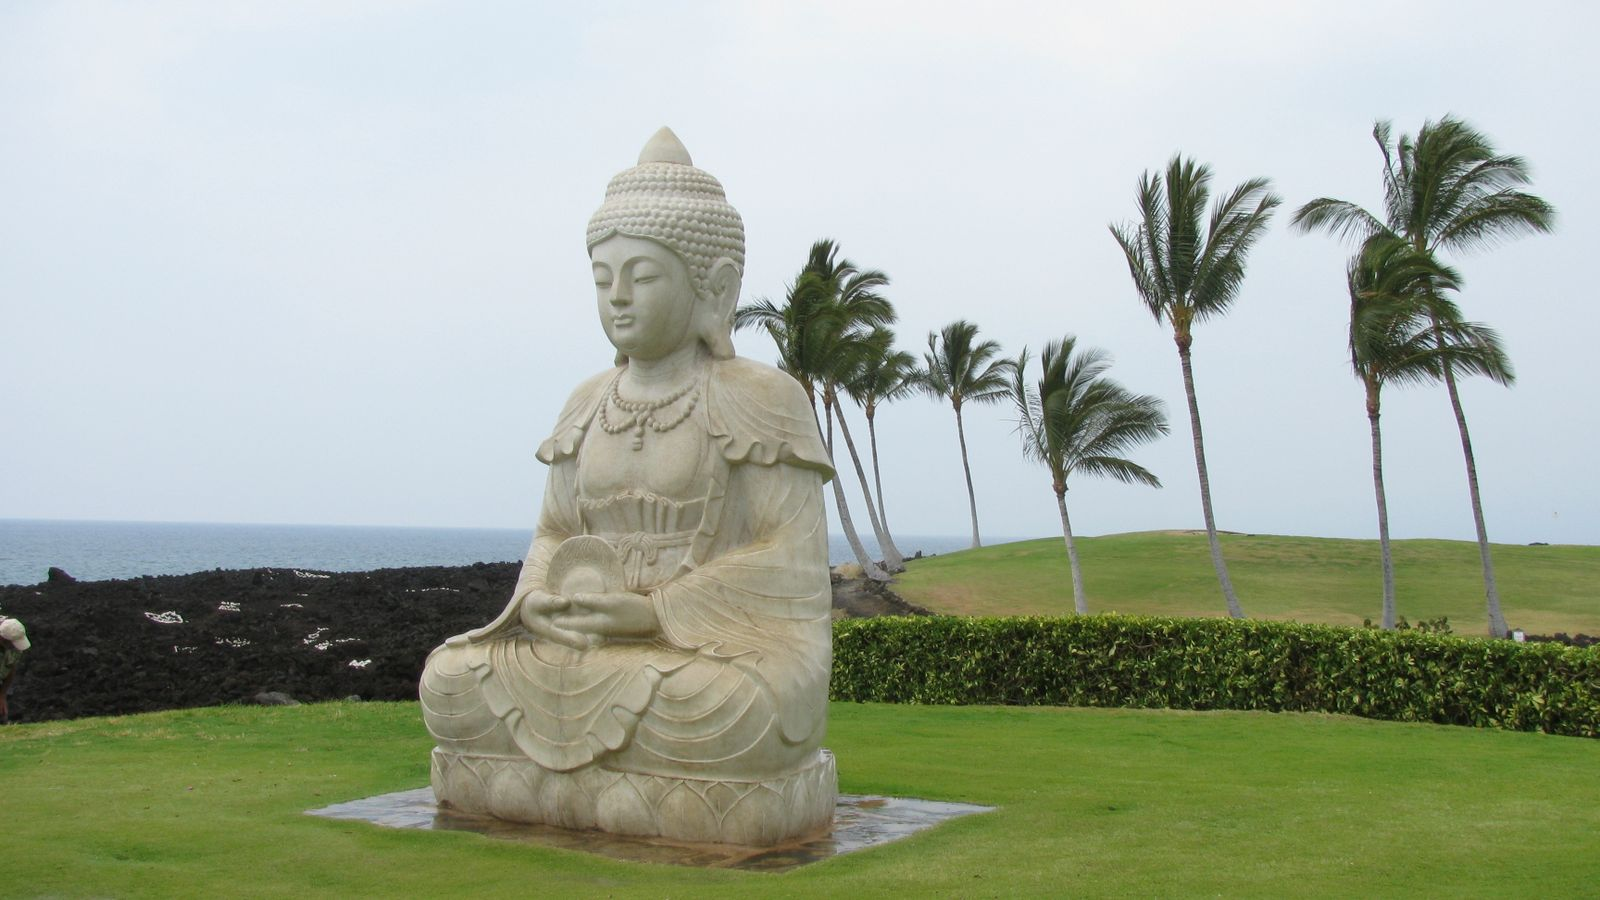 Statue at Waikoloa Village, Hawaii